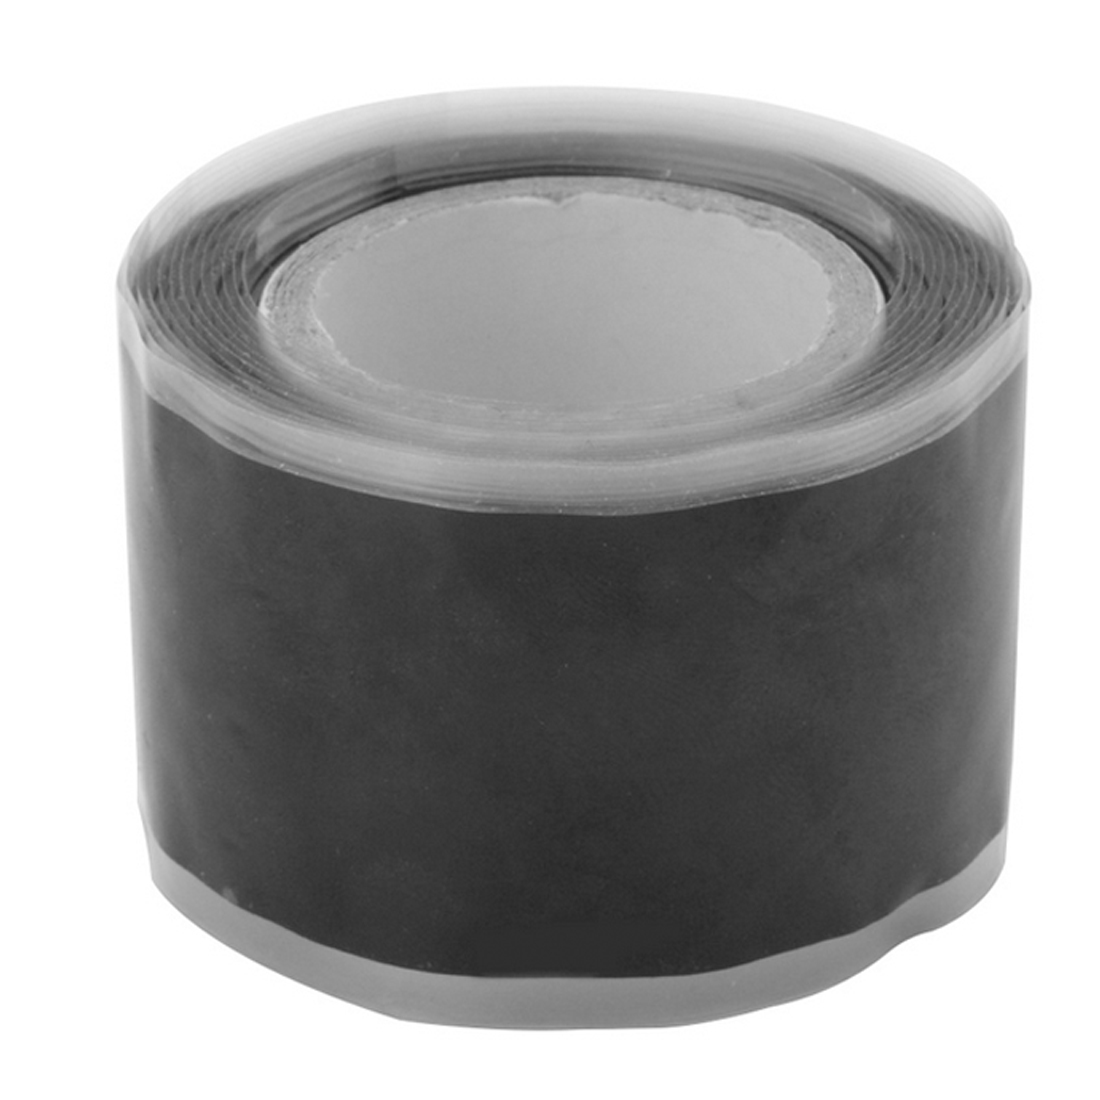 Waterproof Black Rubber Silicone Repair Bonding Tape Rescue Self Fusing Wire